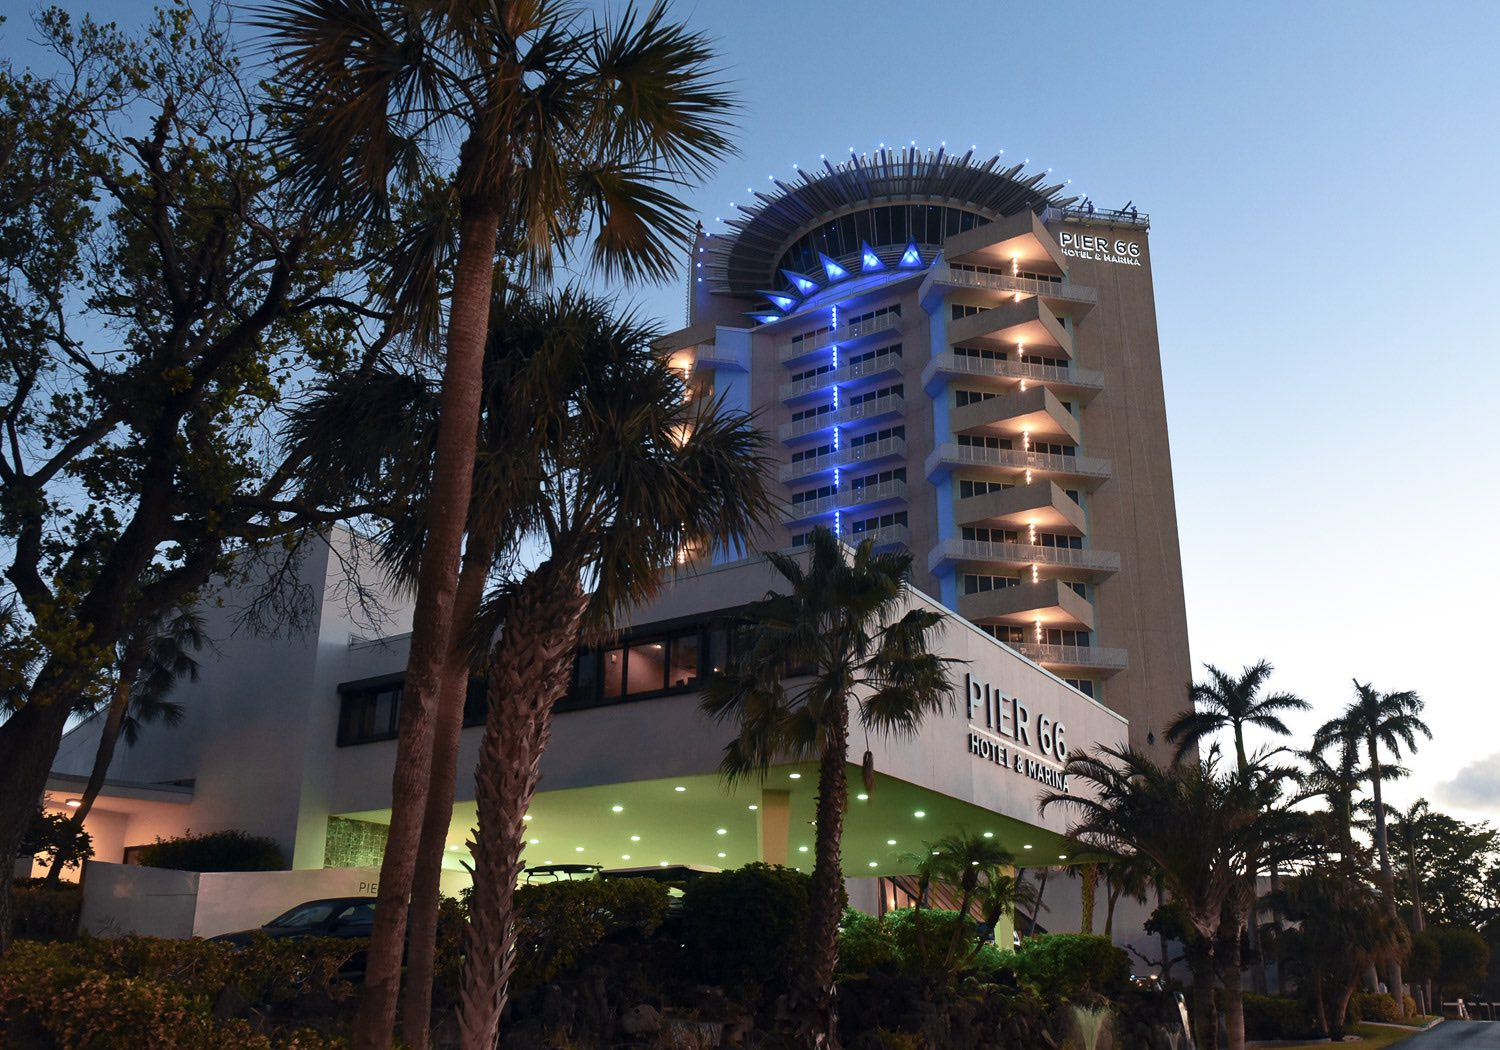 The Iconic Pier Sixty-Six Hotel & Marina | Fort Lauderdale Hotel - Map Of Hotels In Fort Lauderdale Florida